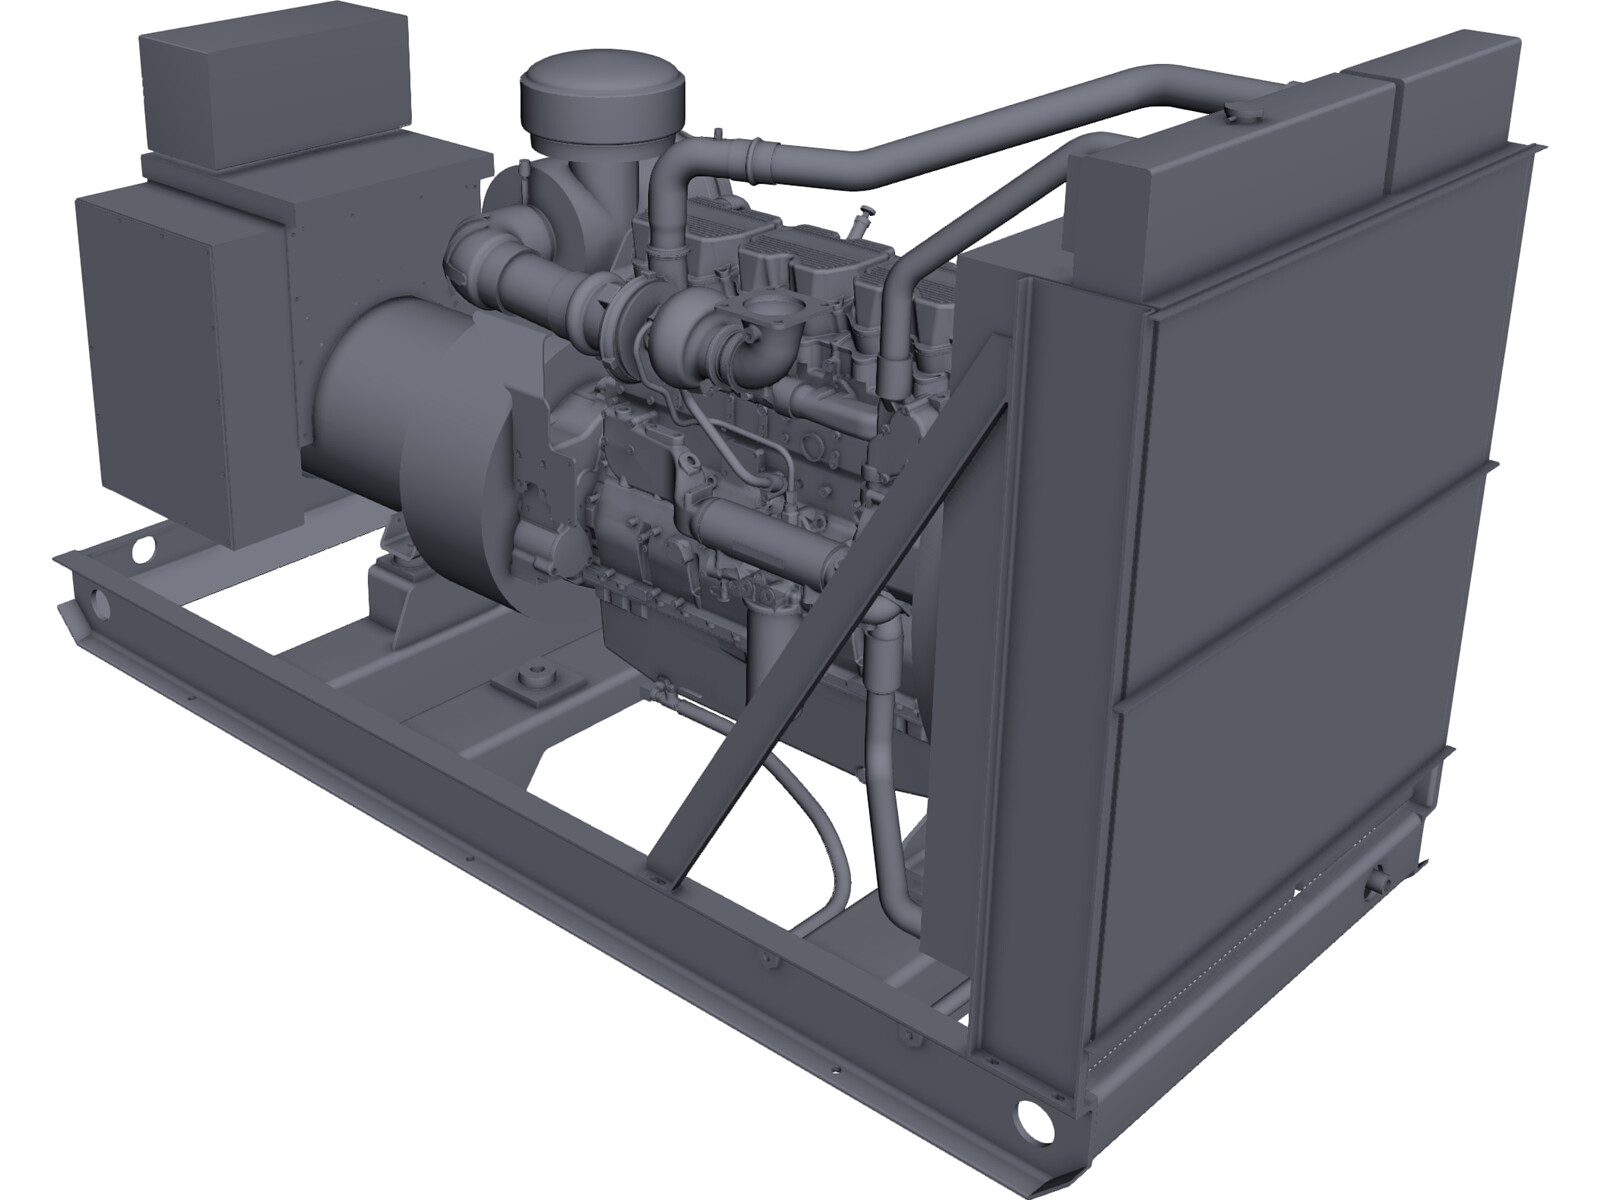 Caterpillar C15 Generator Set 3d Cad Model 3d Cad Browser